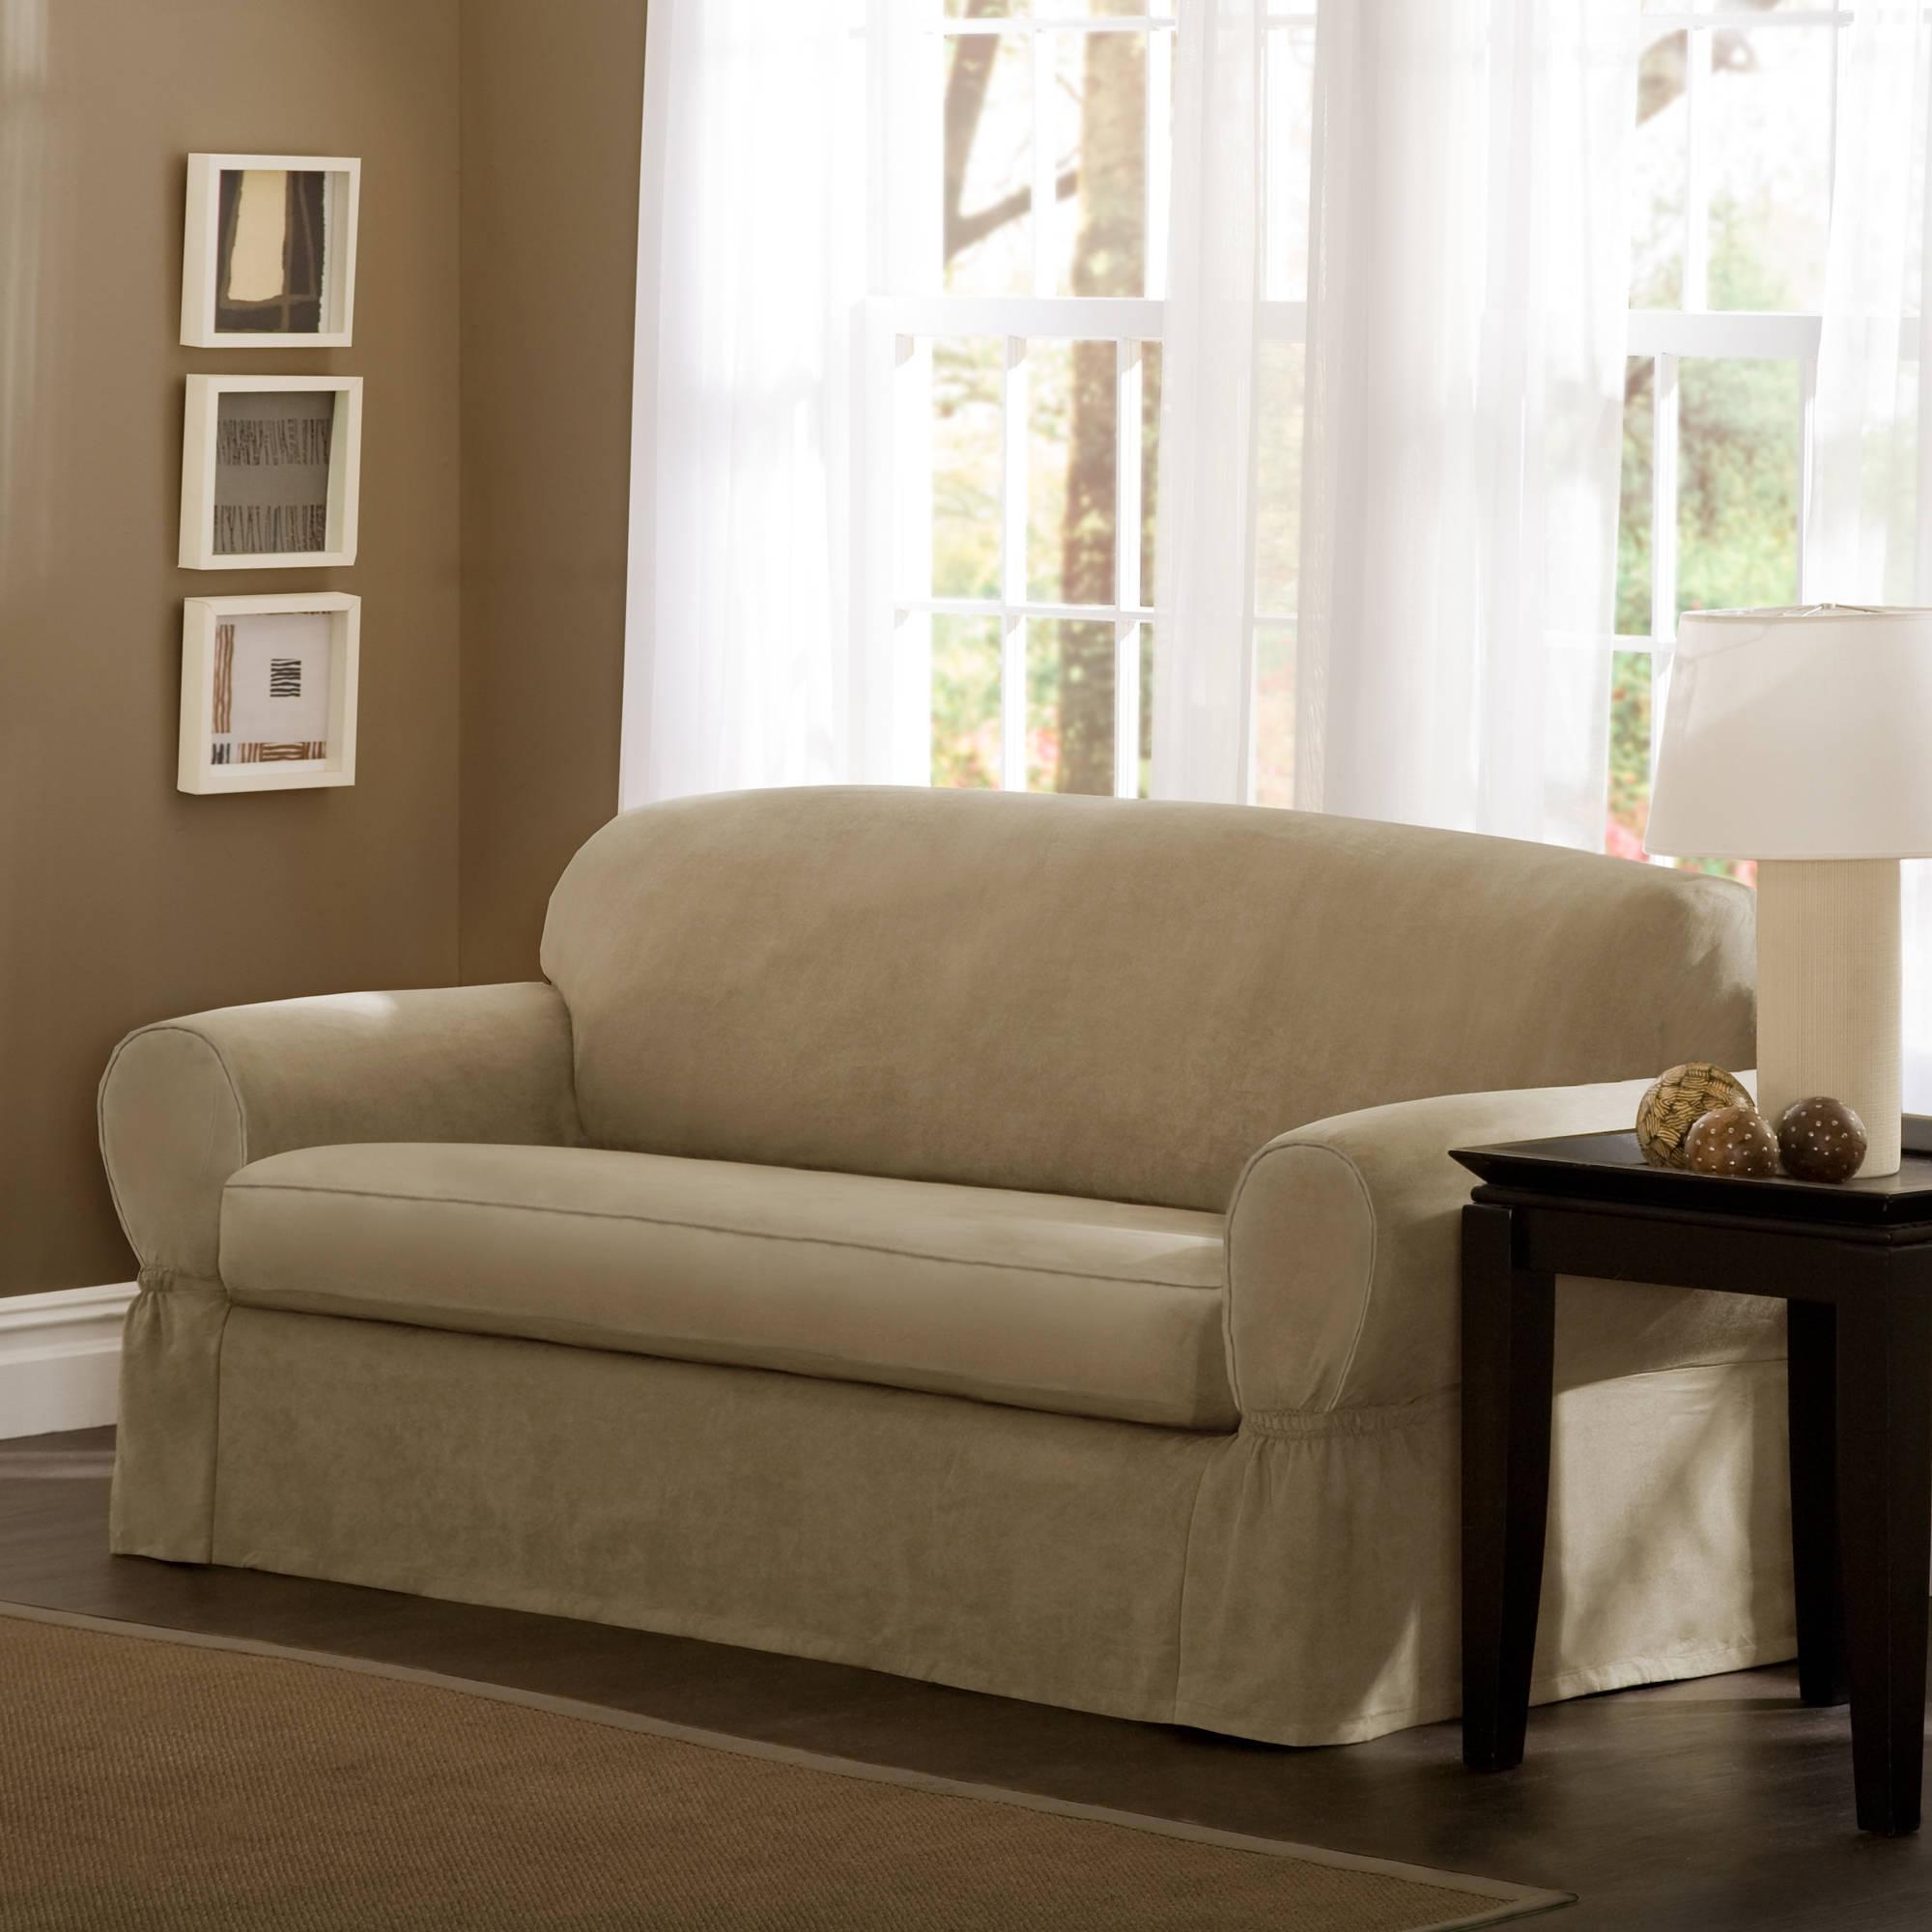 Living Room : Piece T Cushion Couch Cover Sofa Slipcover Sofas Pertaining To 2 Piece Sofa Covers (Image 9 of 27)